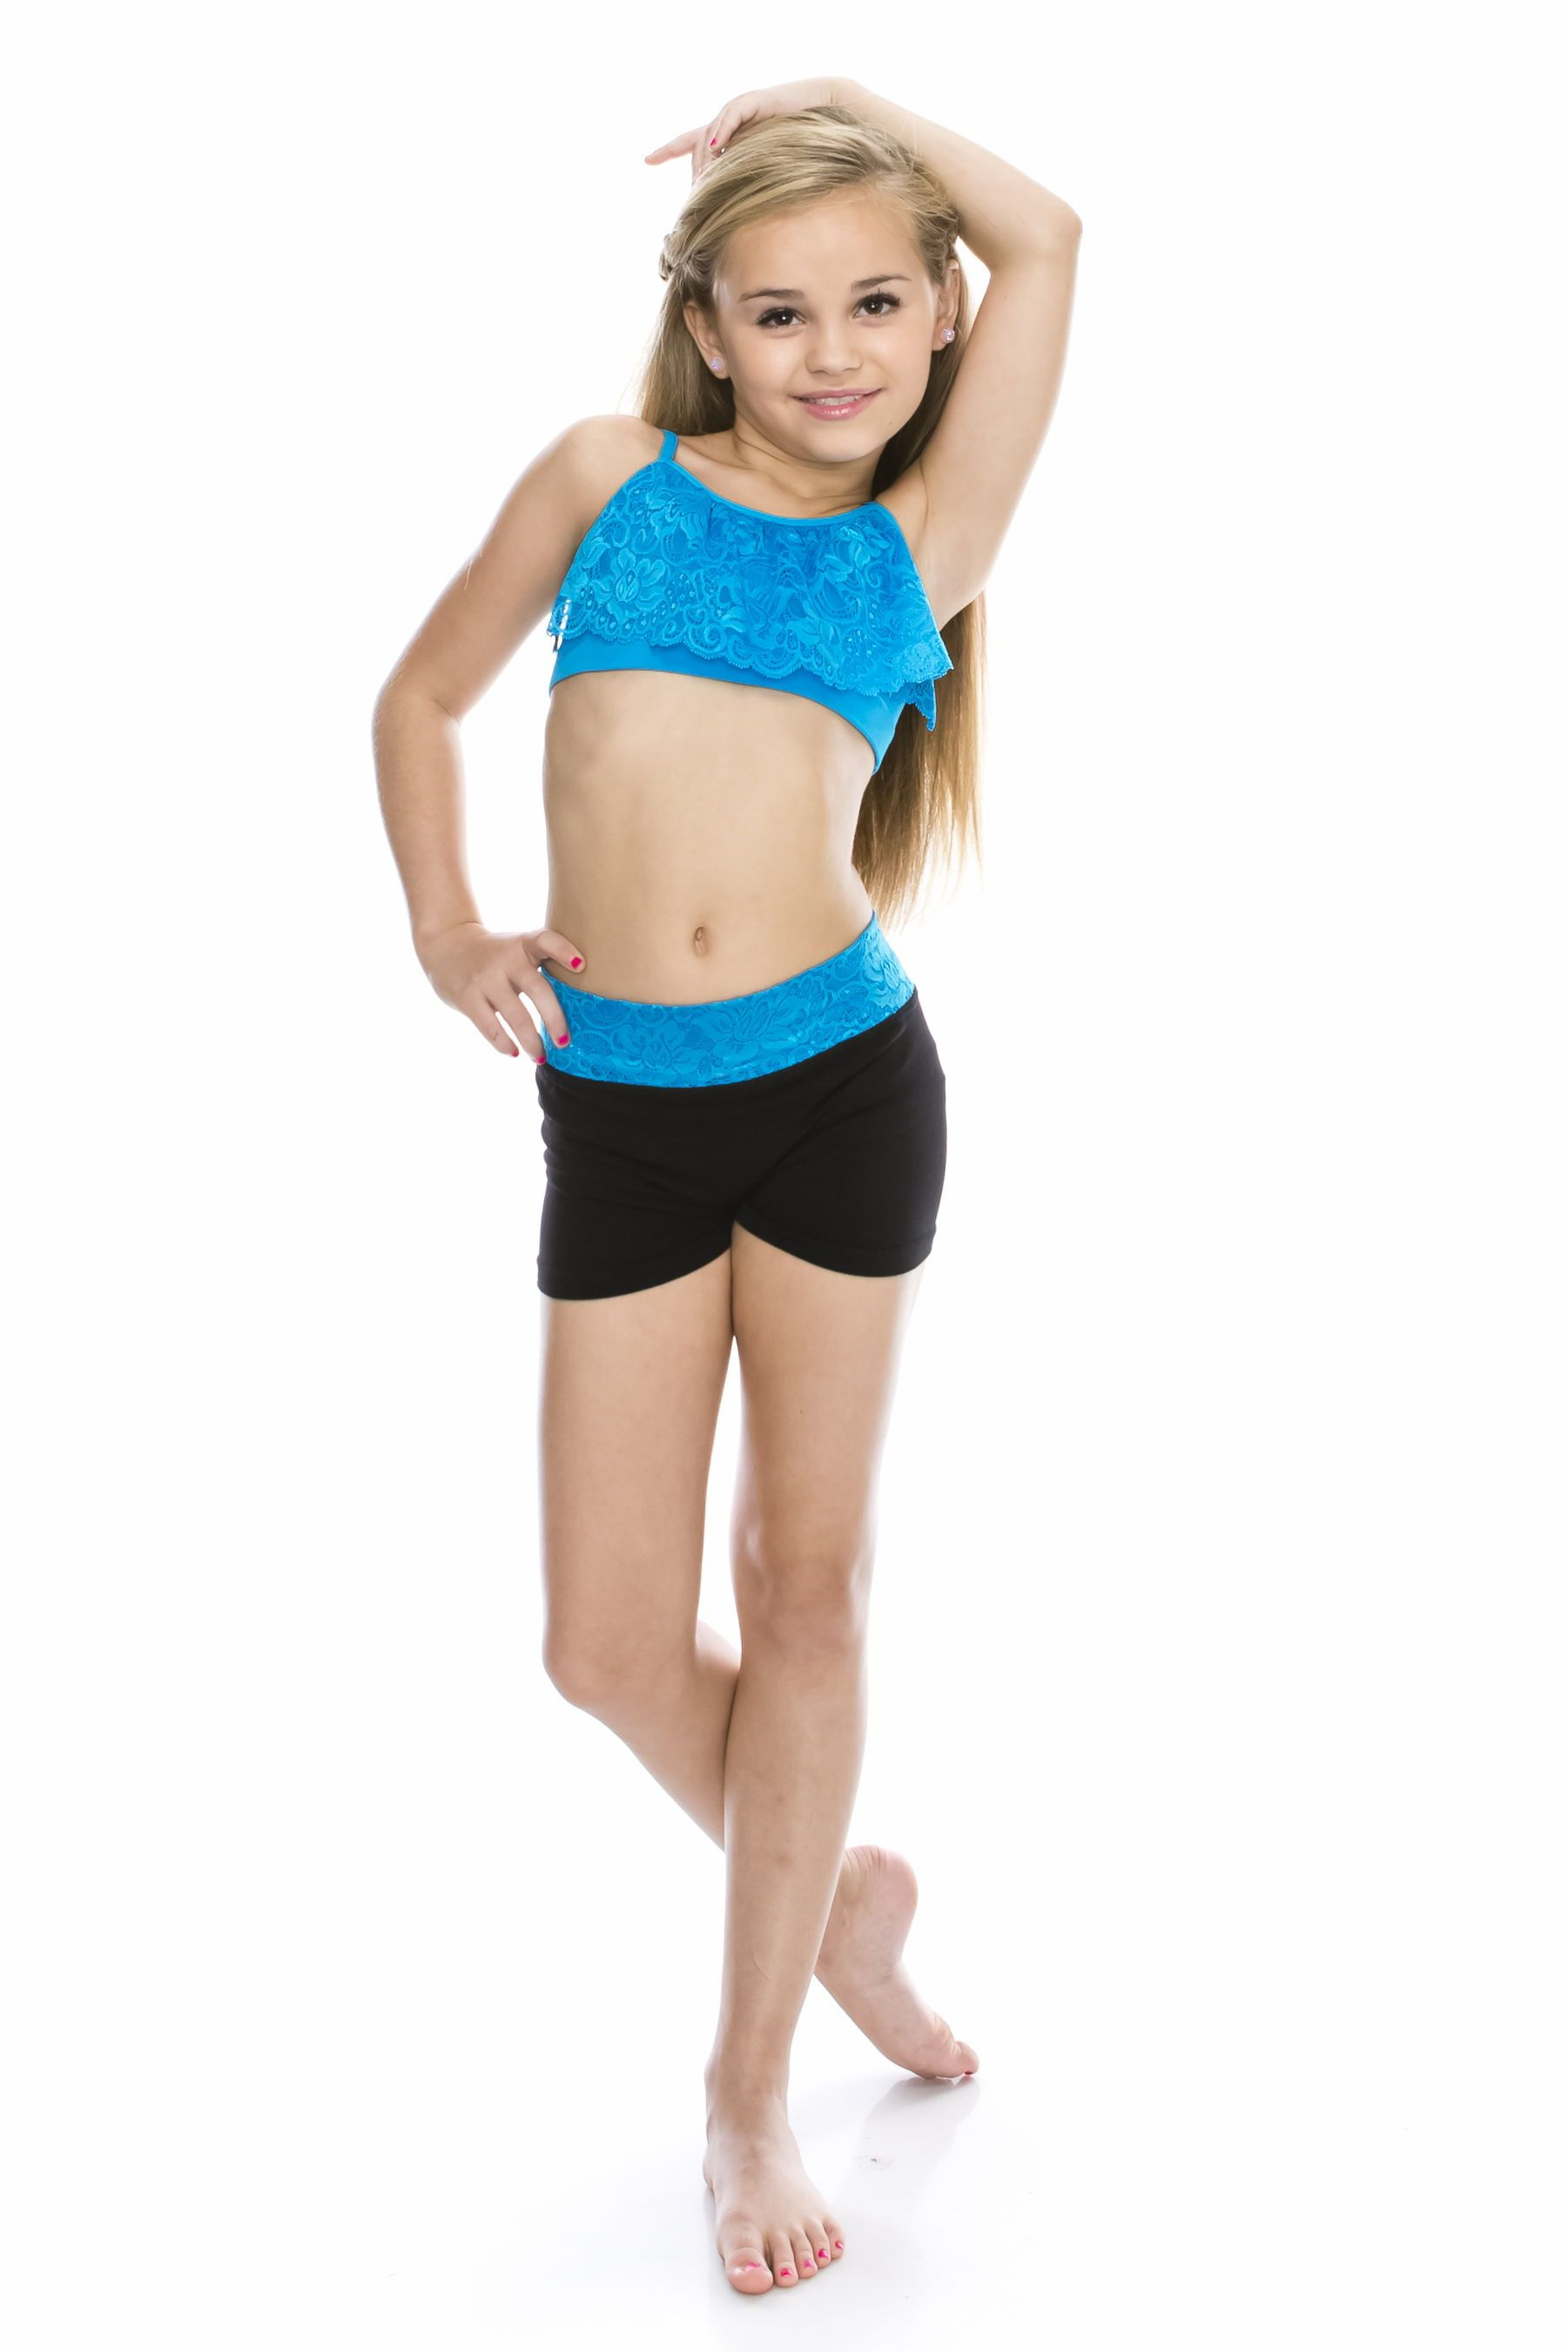 e3c5032292d21 Dancers dont need wings to fly. Shop Kurveshops stretchy dancewear today.   instadance